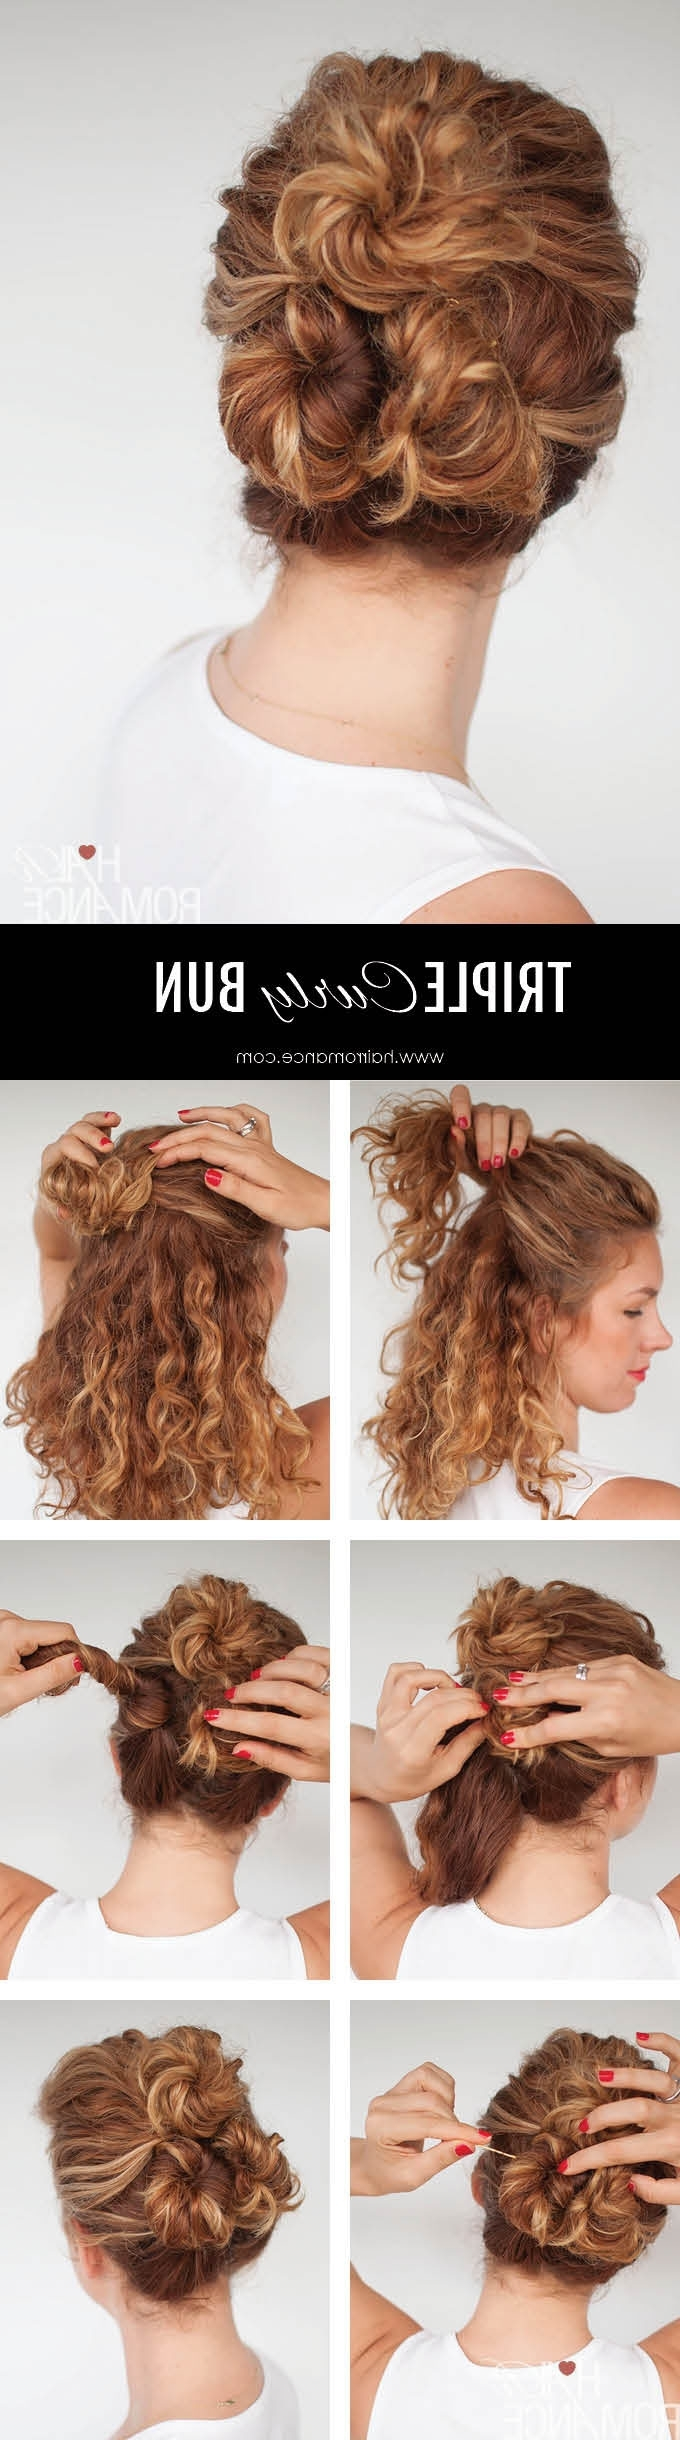 Easy Everyday Curly Hairstyle Tutorials – The Curly Triple Bun Within Easy Updo Hairstyles For Curly Hair (View 10 of 15)